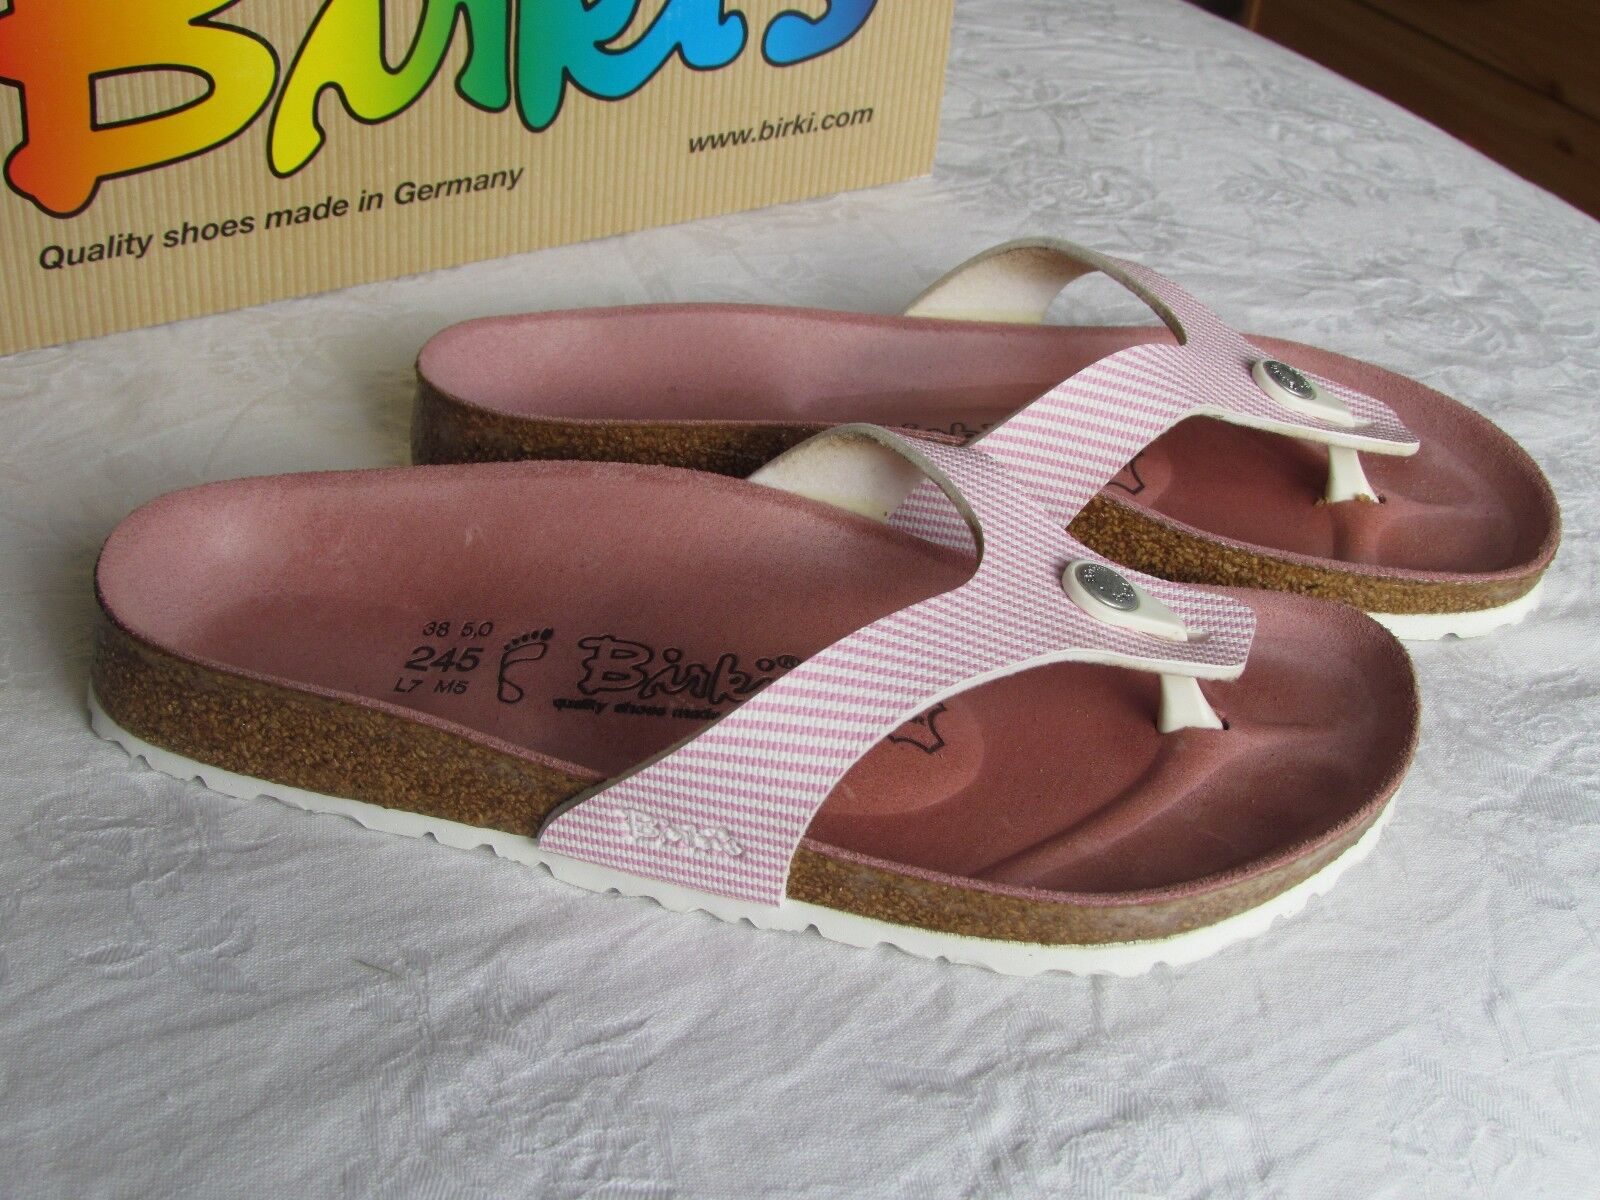 Último gran descuento NEW Birkis By Birkenstock Martina Ladies Soft Pink Stripes Sandals Size 5 EU 38